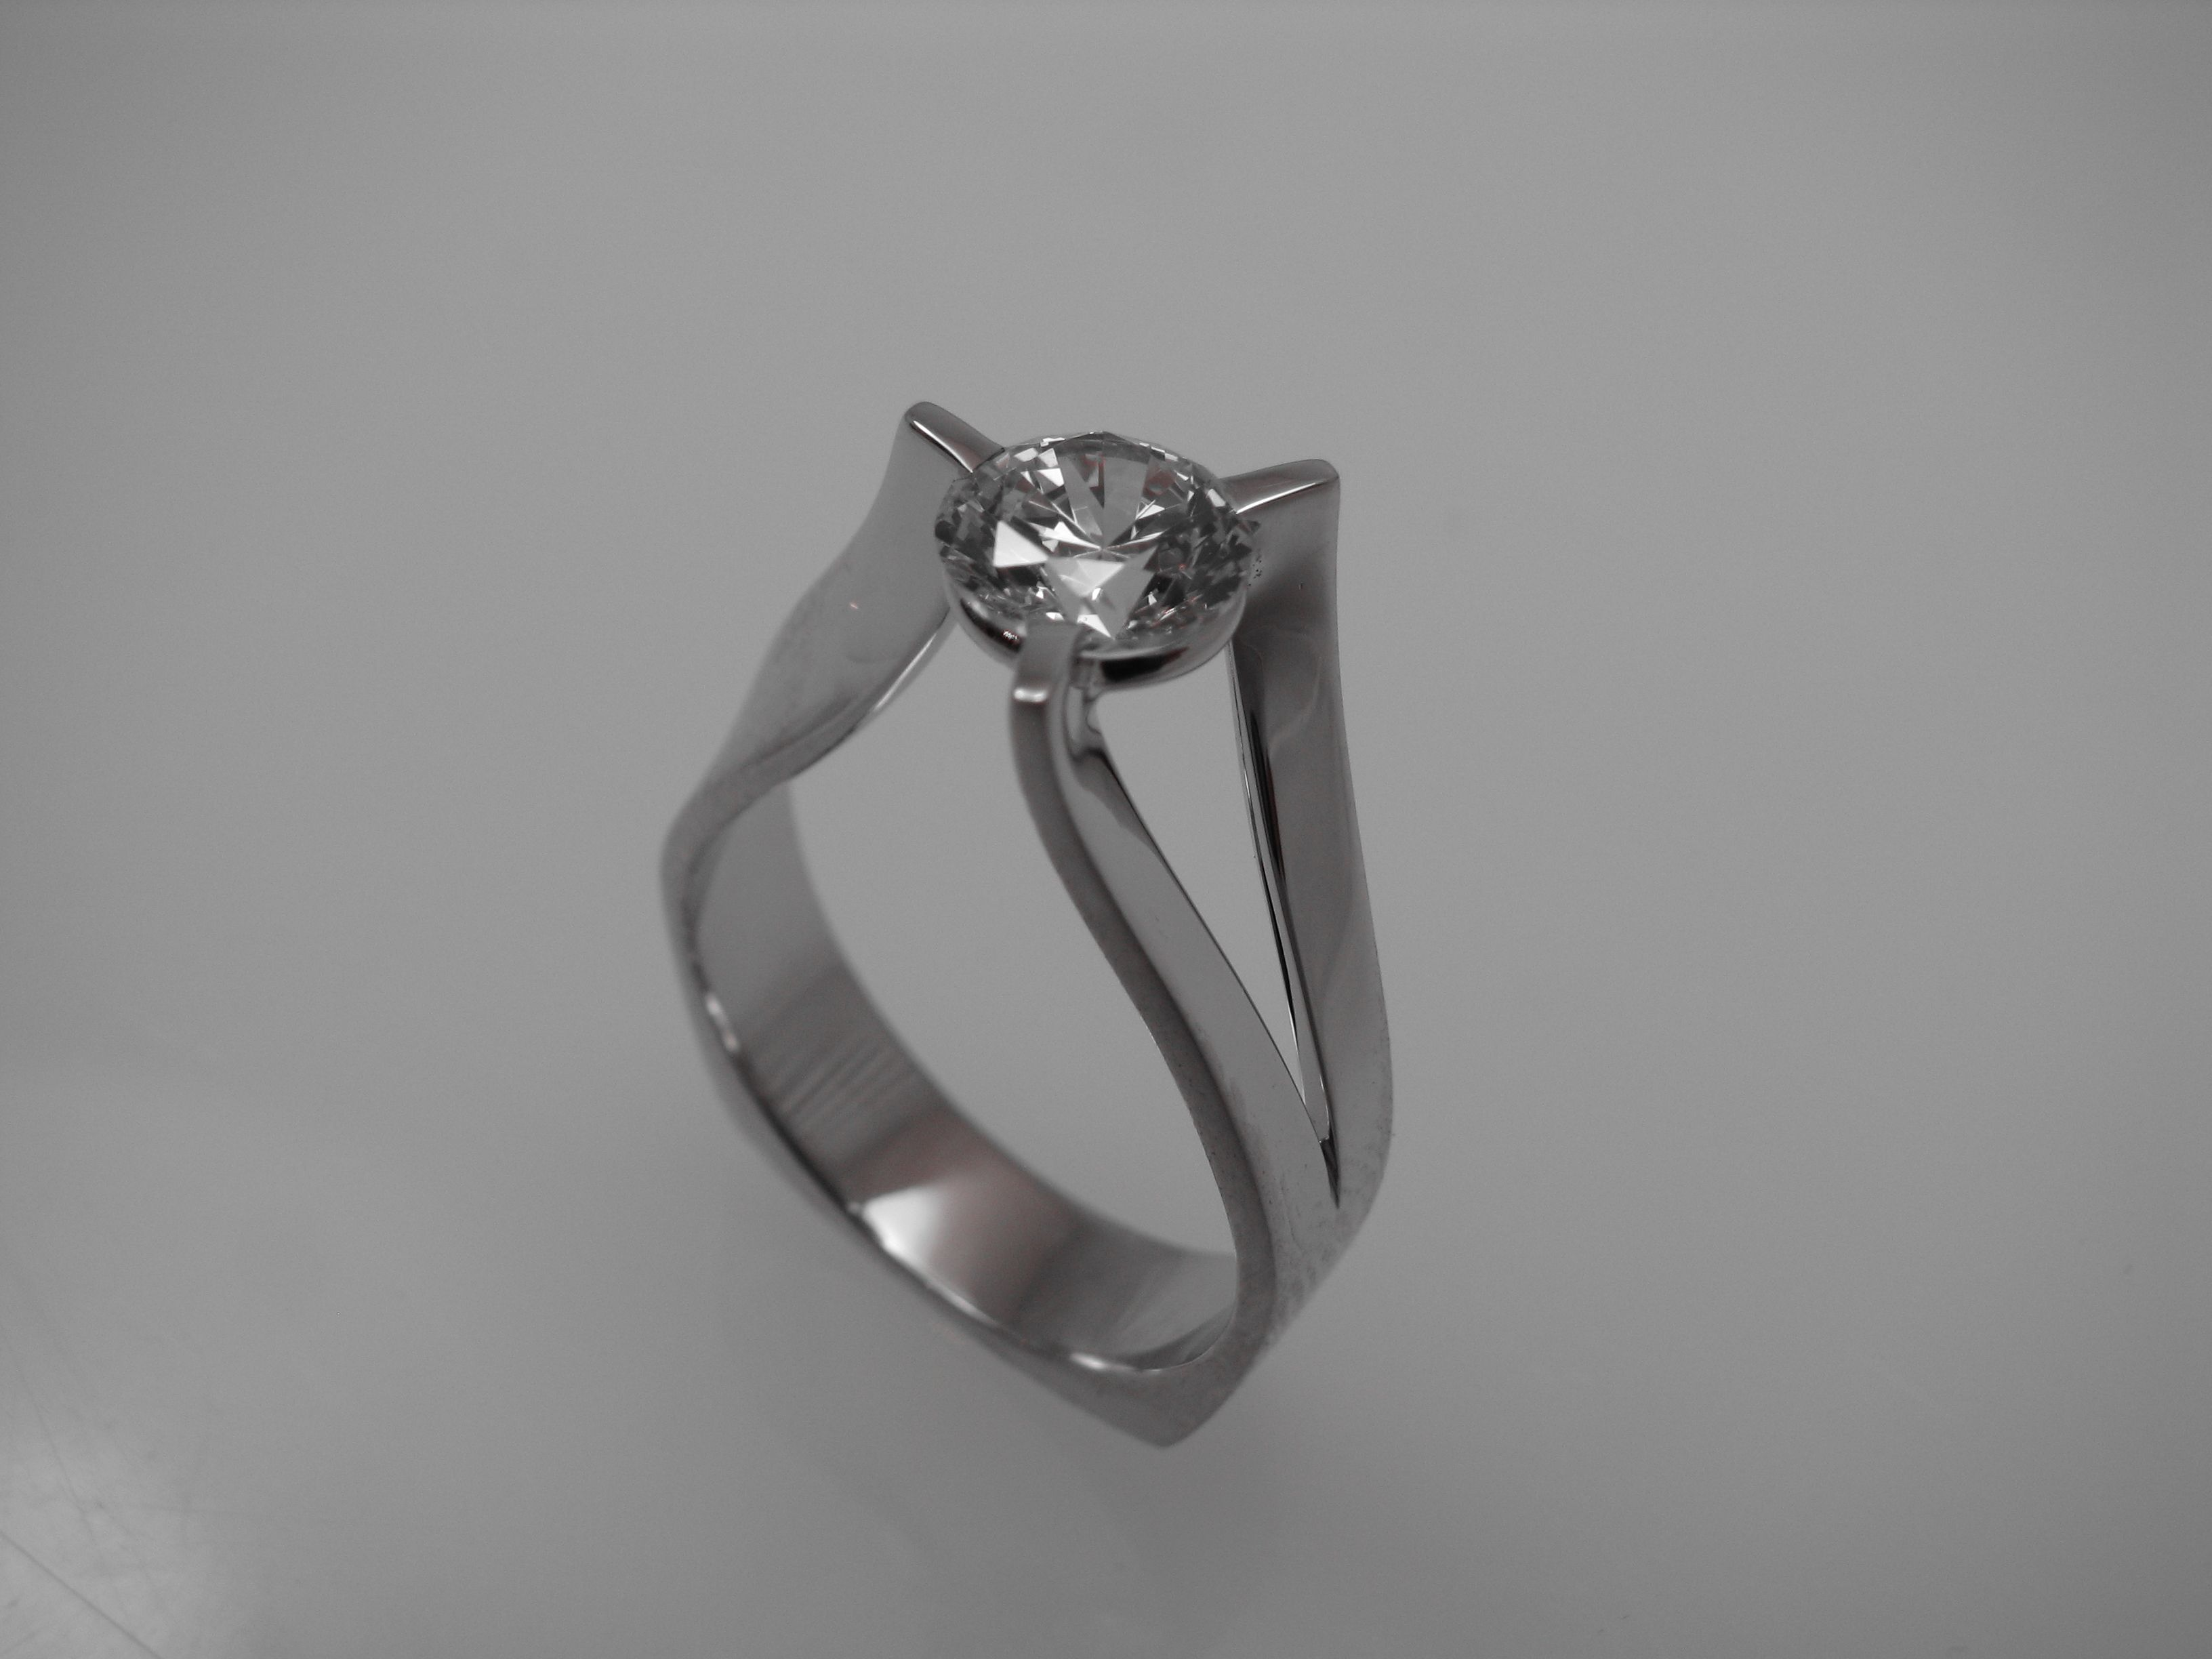 color i is and to a cz choosing colorless thinking about one vs this hope my cloudy diamond if ring helps but an some topic post comparision of